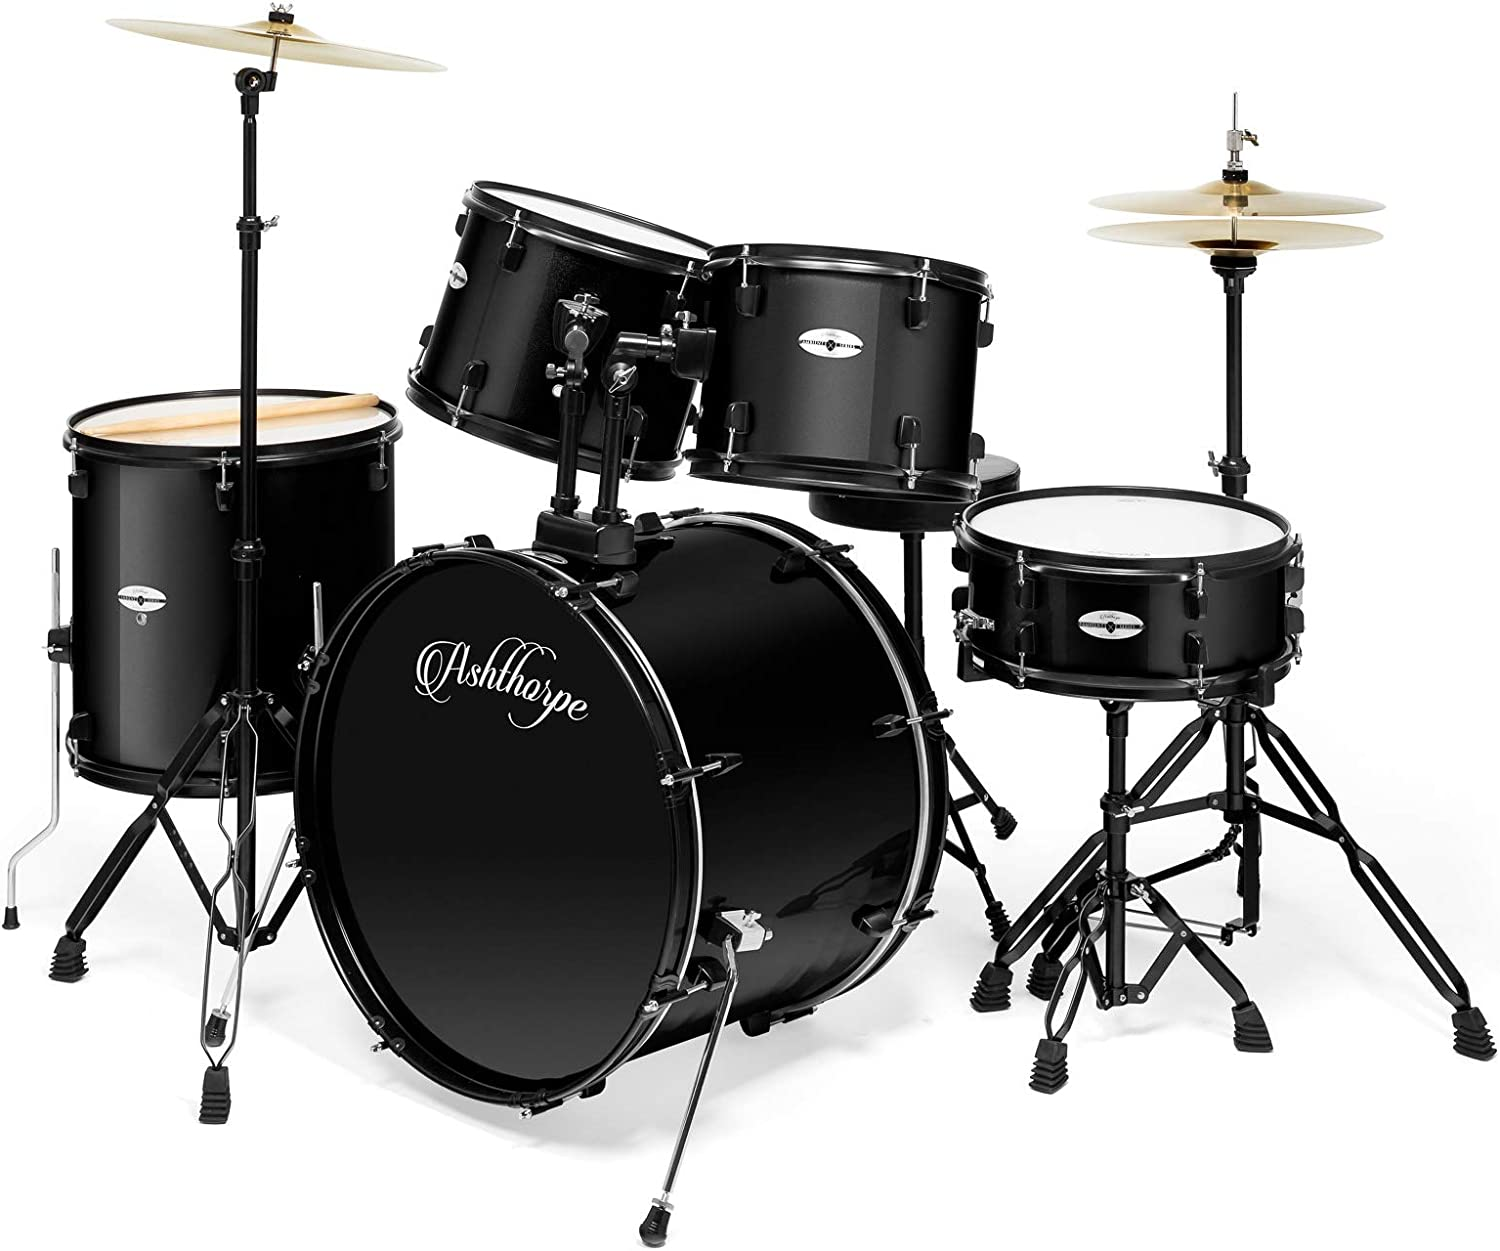 Ashthorpe 5-Piece Complete Full Size Adult Drum Set with Remo Batter Heads